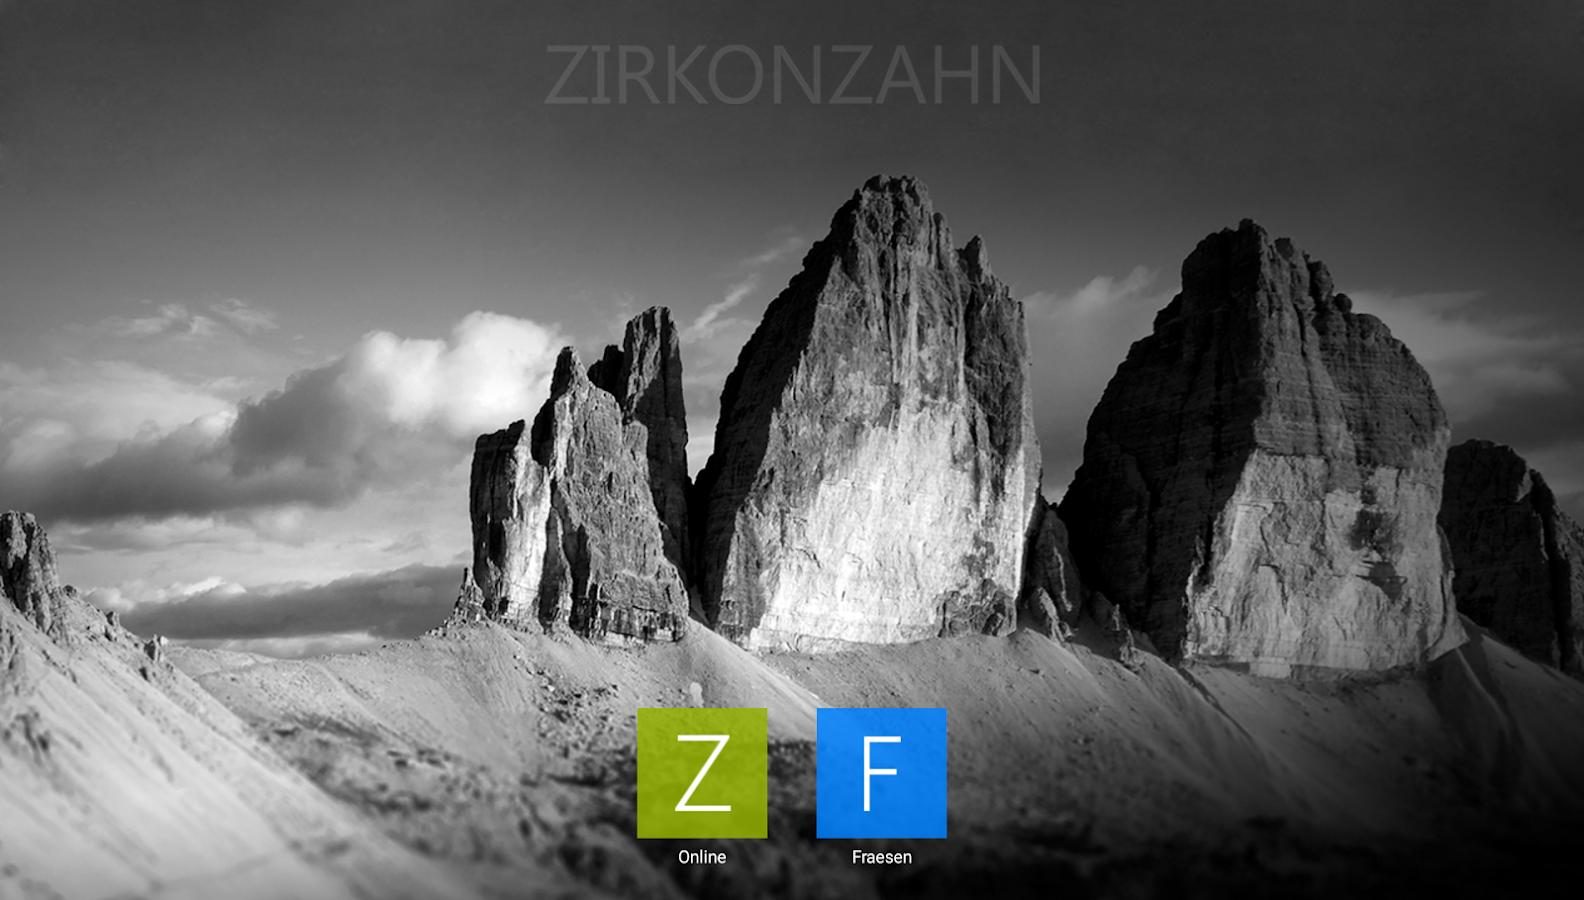 Zirkonzahn.Mobile- screenshot